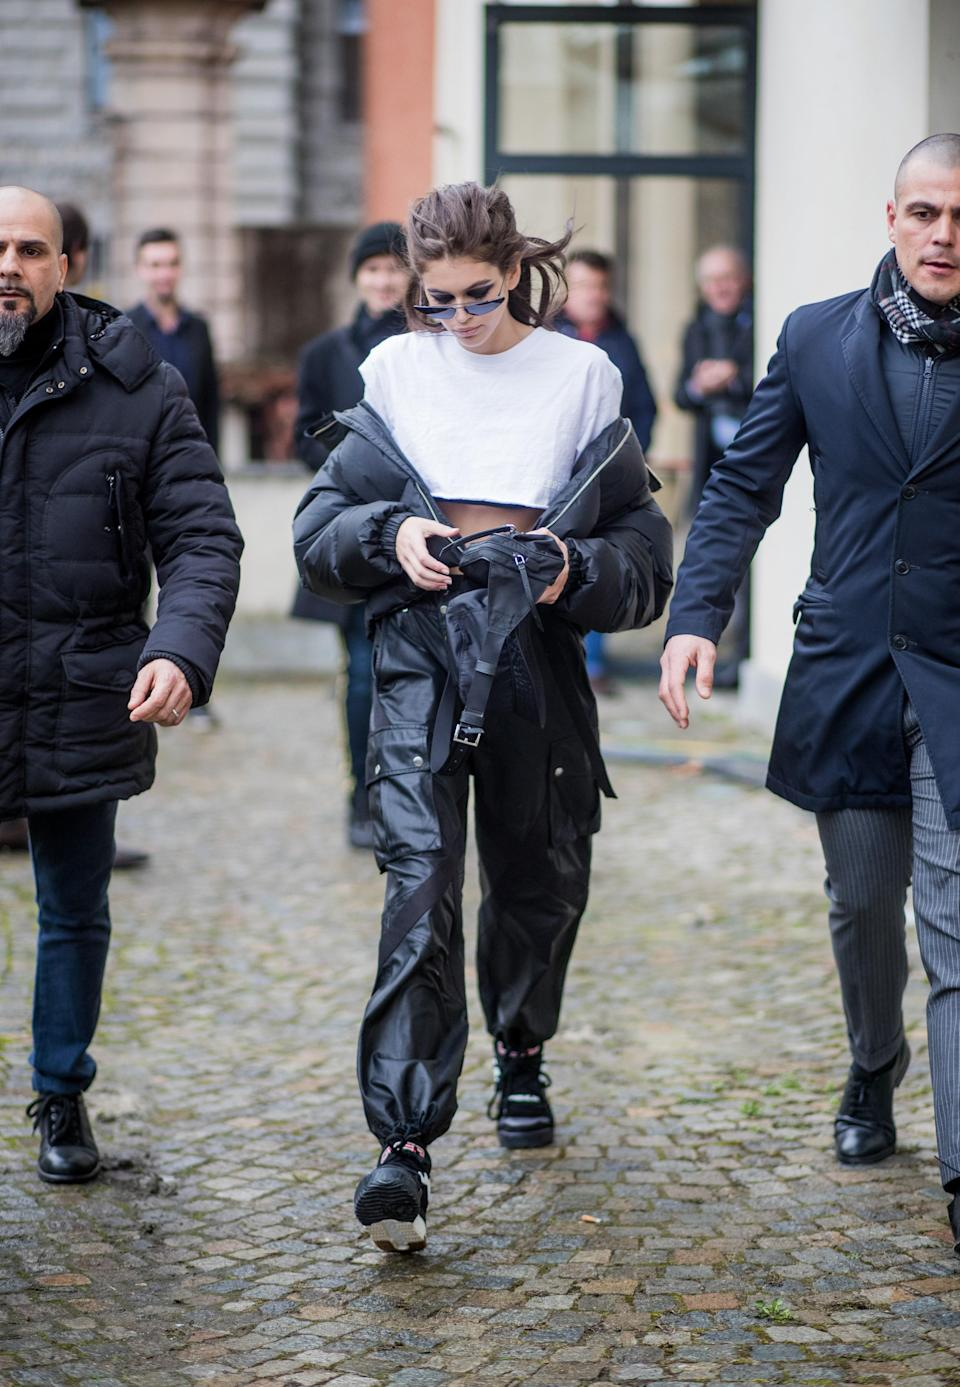 This look epitomizes the grungier, sportswear aesthetic Kaia (and many others) frequently sported this year.